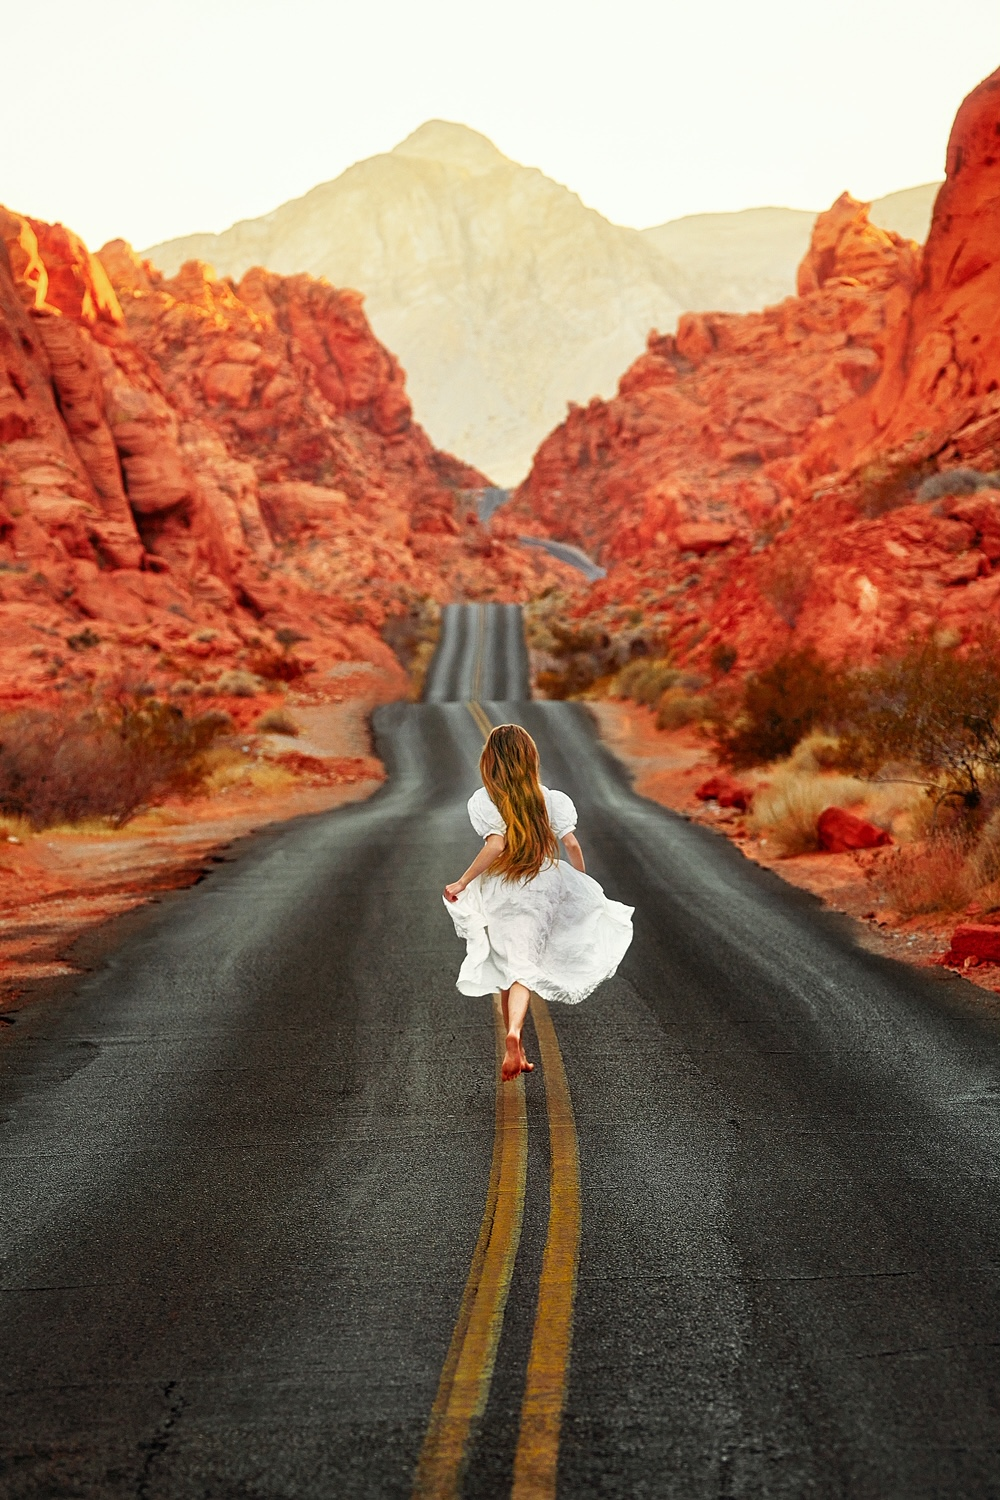 A woman running down a street surrounded by orange and red rock formations wearing a white dress best cottagecore dresses